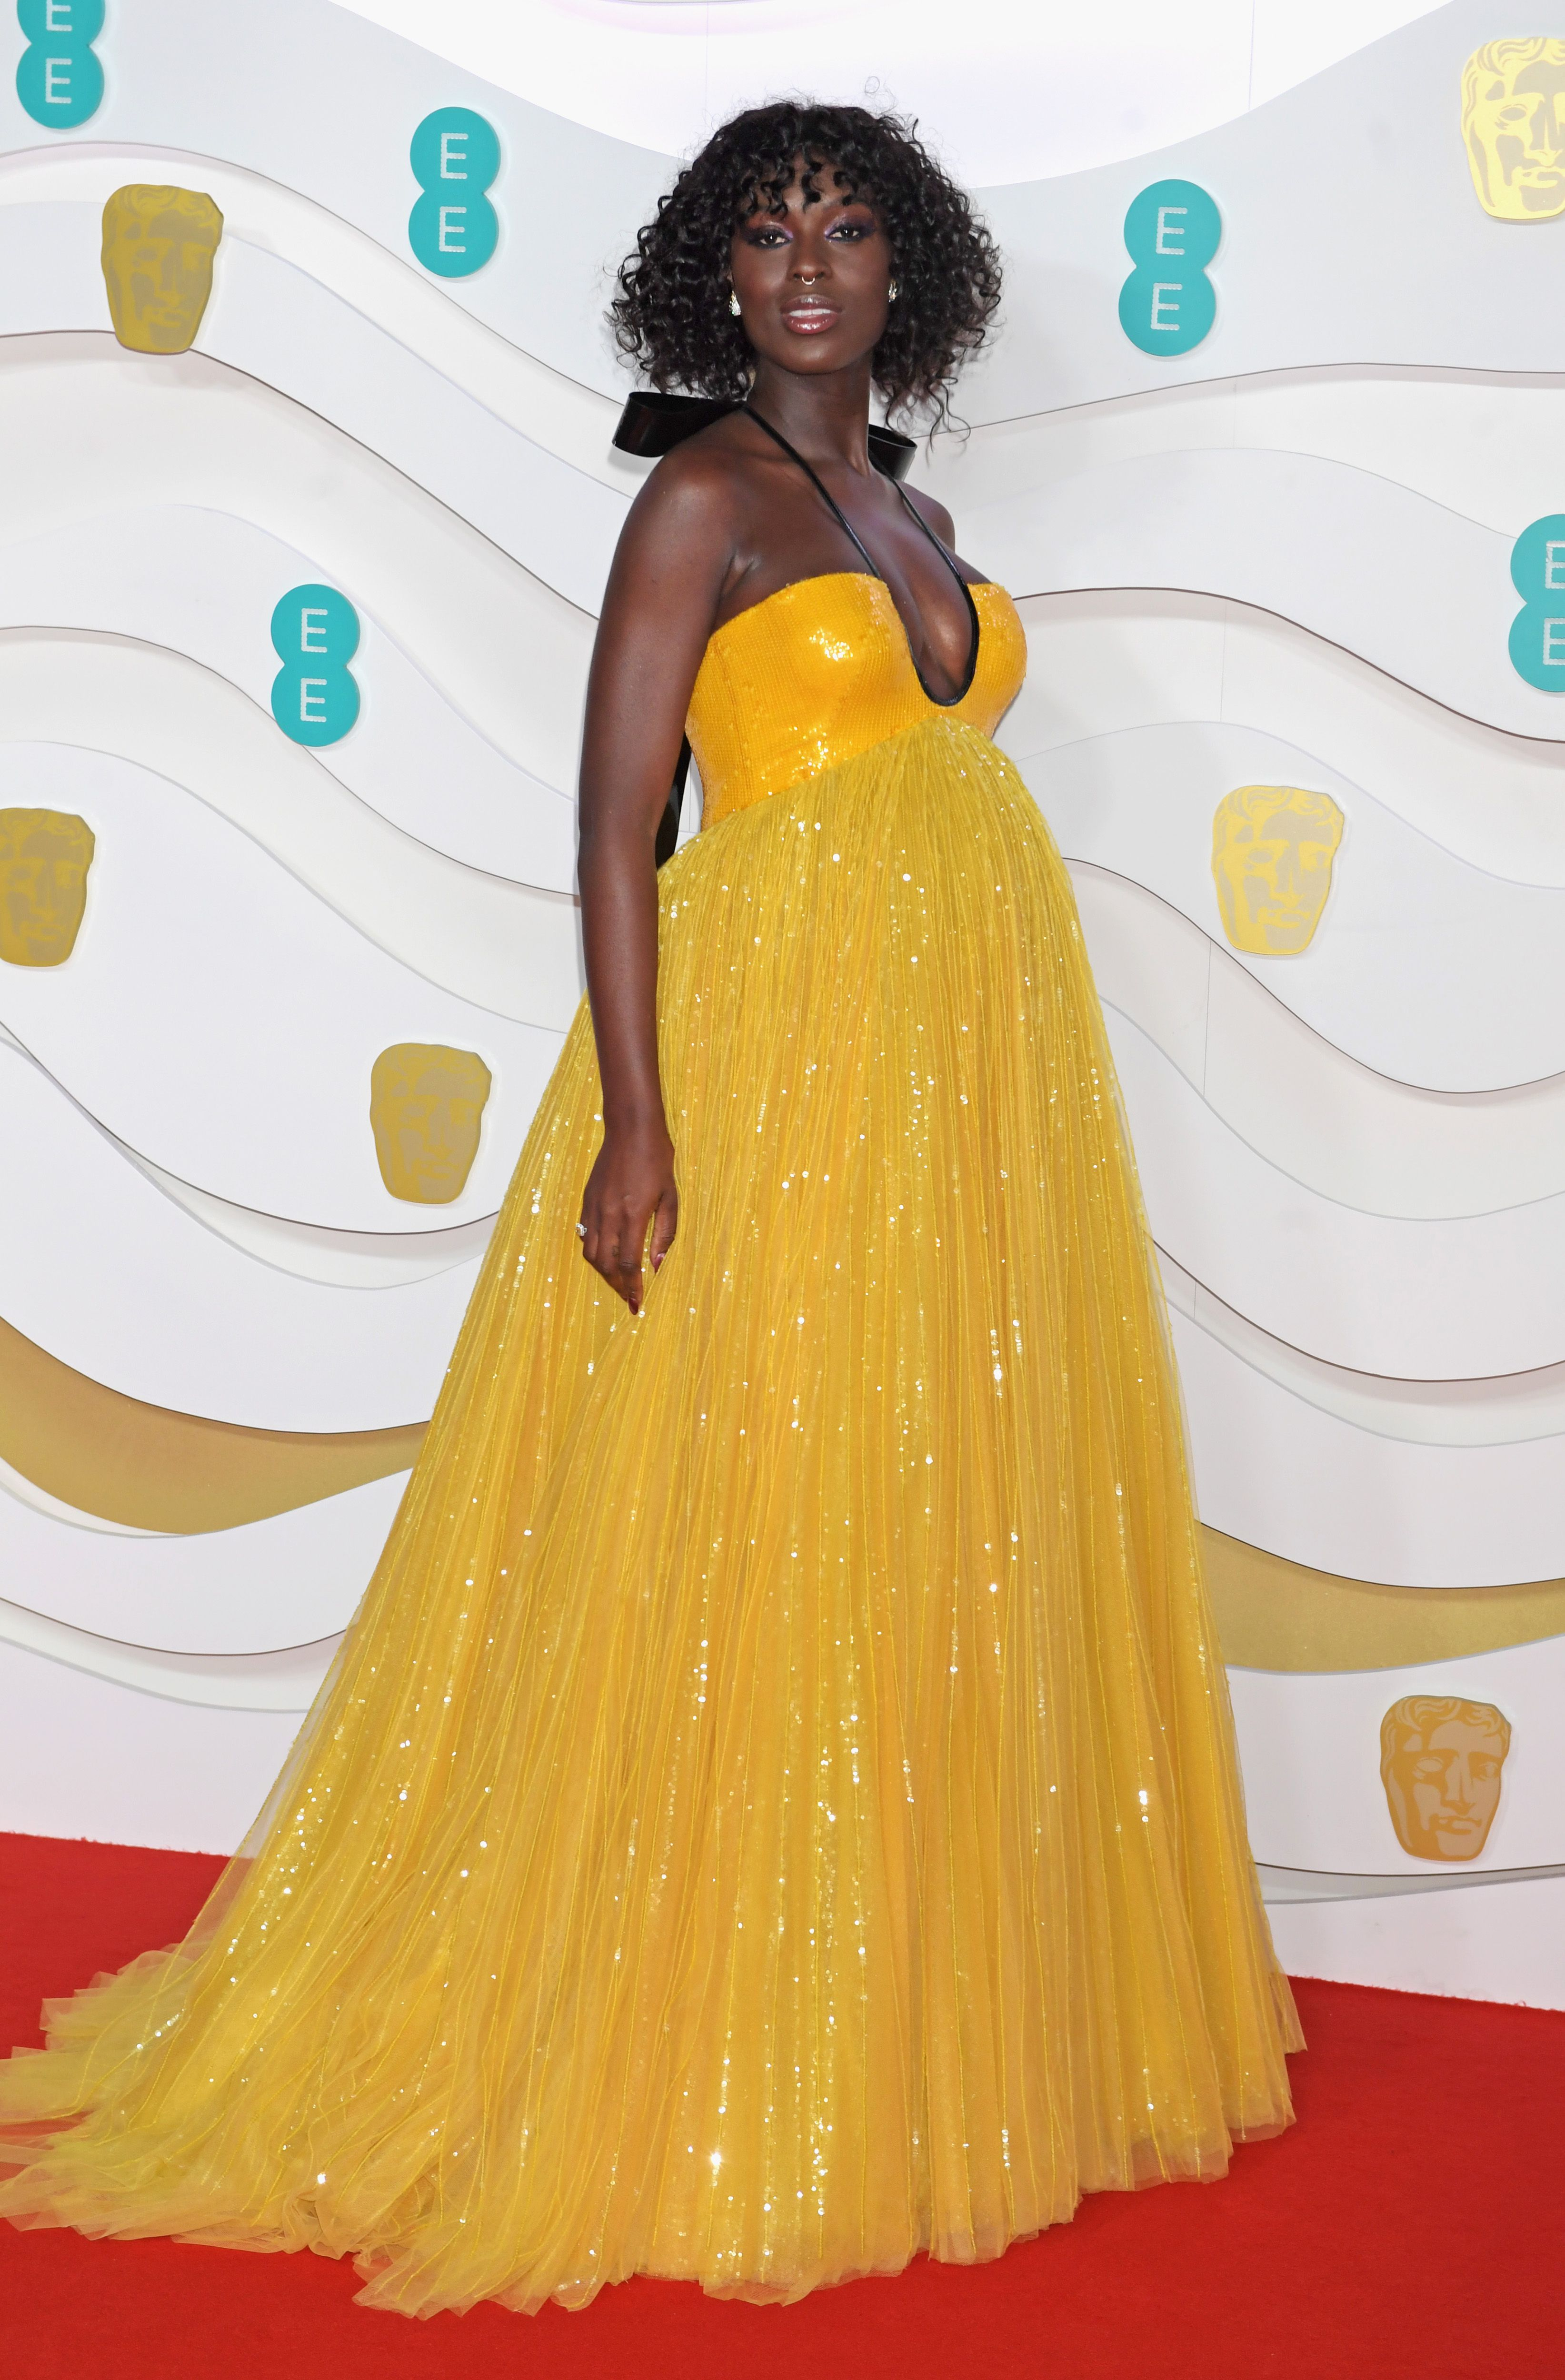 Baftas 2020 All The Red Carpet Looks